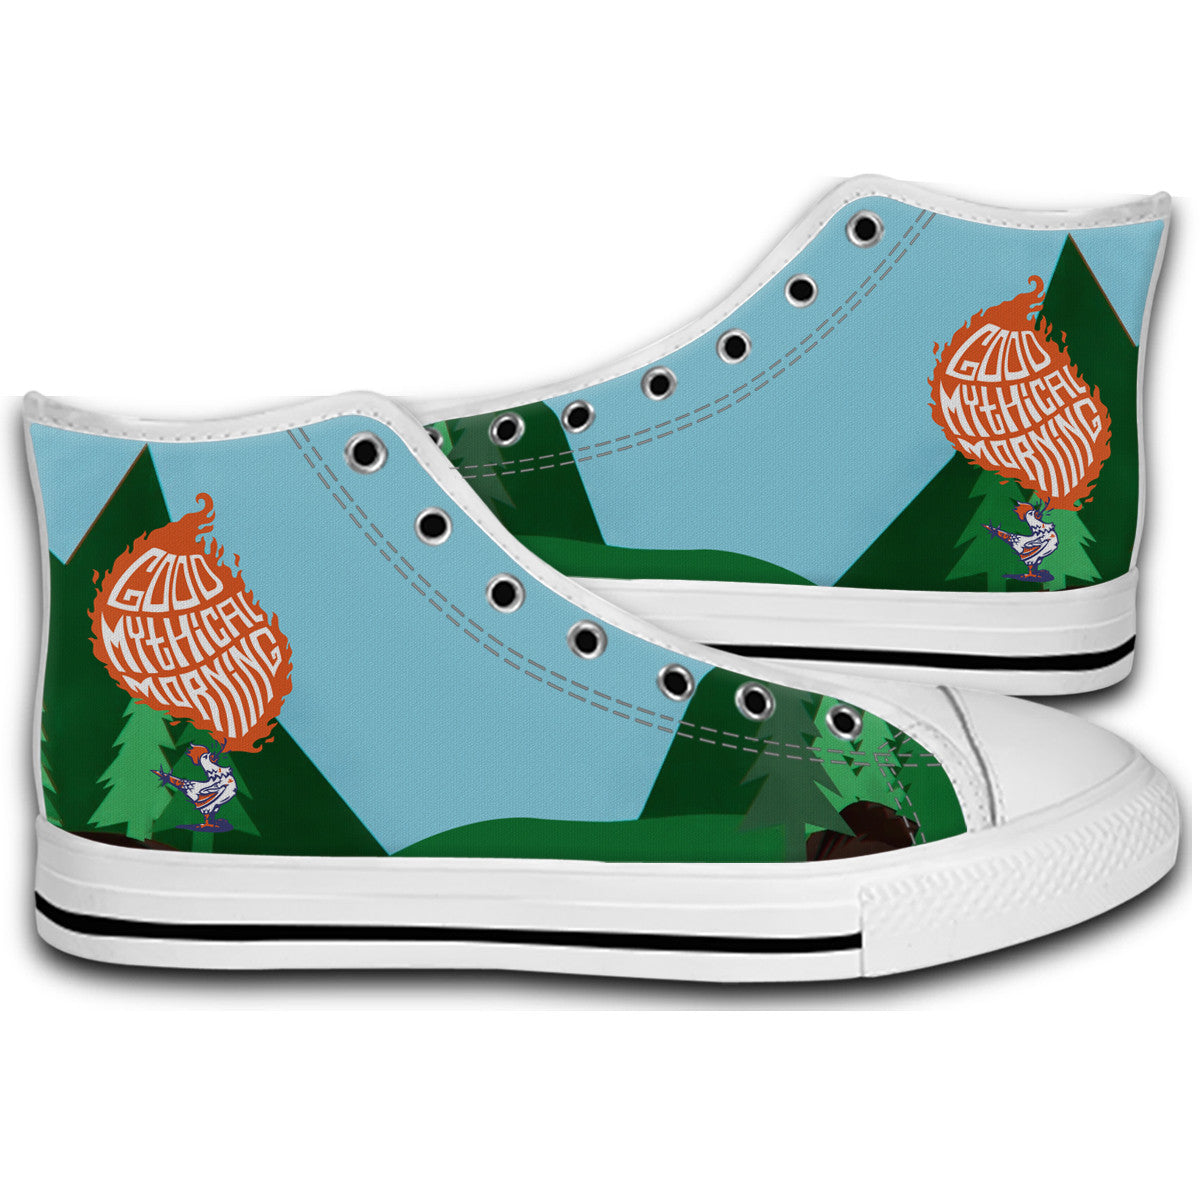 best service 70786 2e618 Good Mythical Morning Funny Canvas Style Shoes Fashion Sneakers